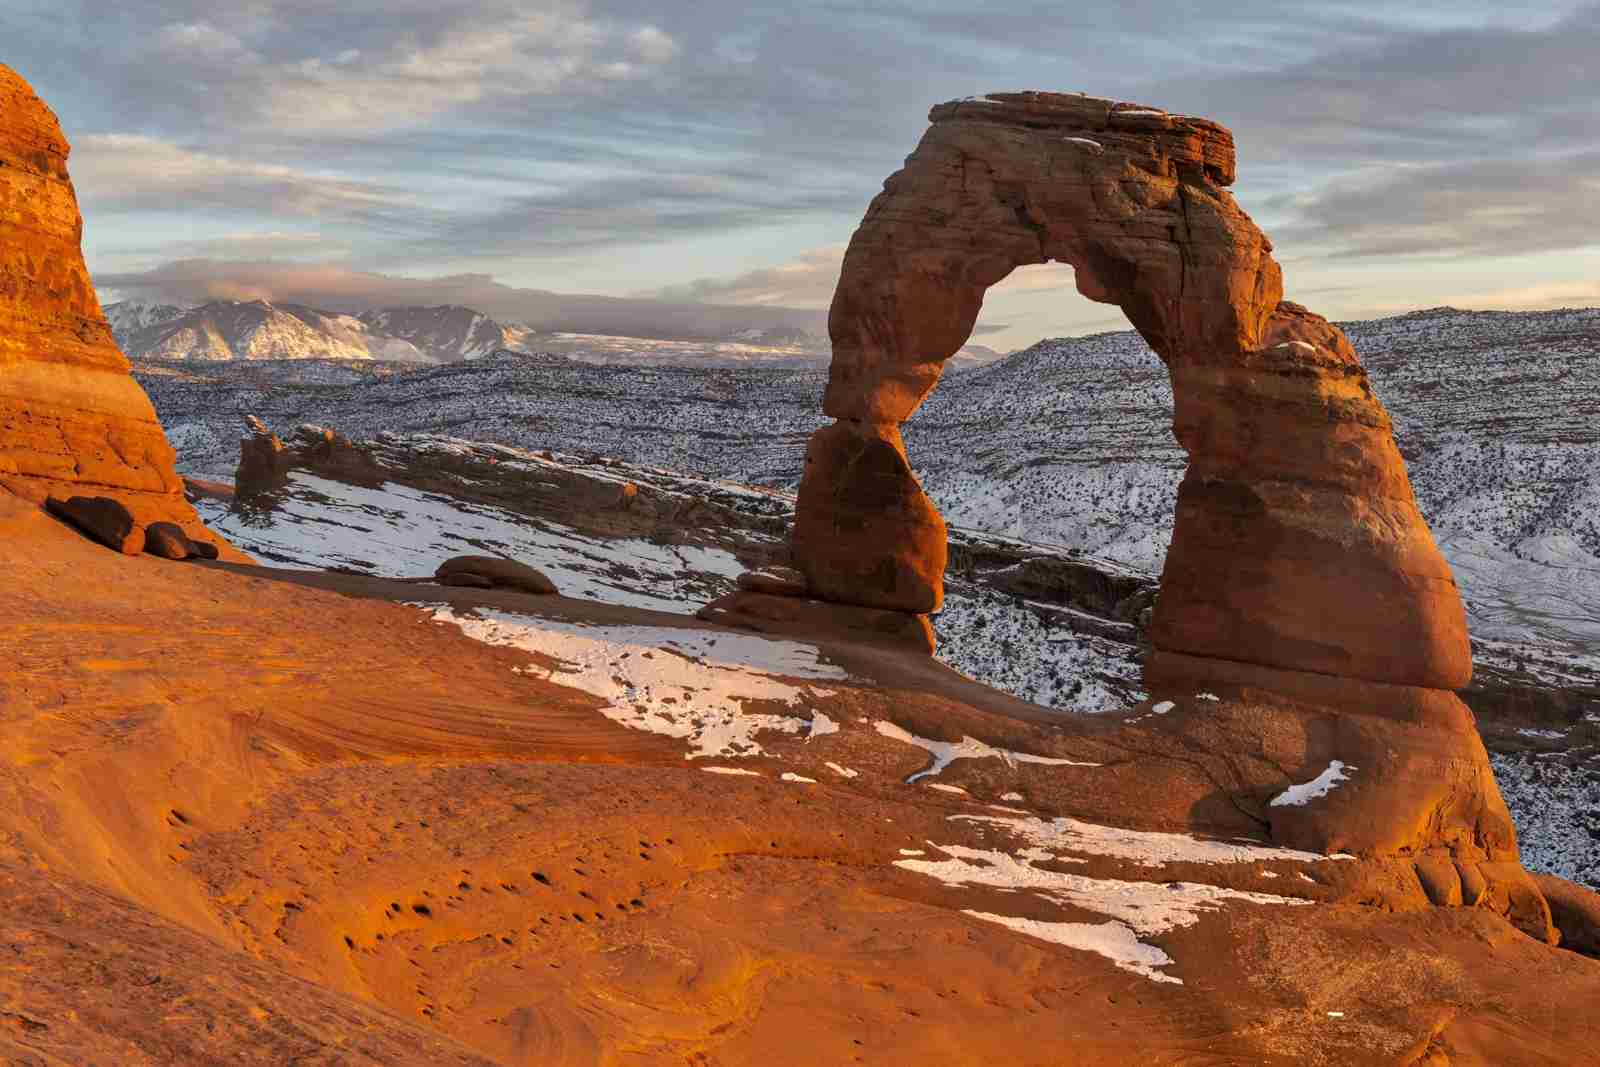 Arches National Park. (Photo by Hugh/Adobe Stock)